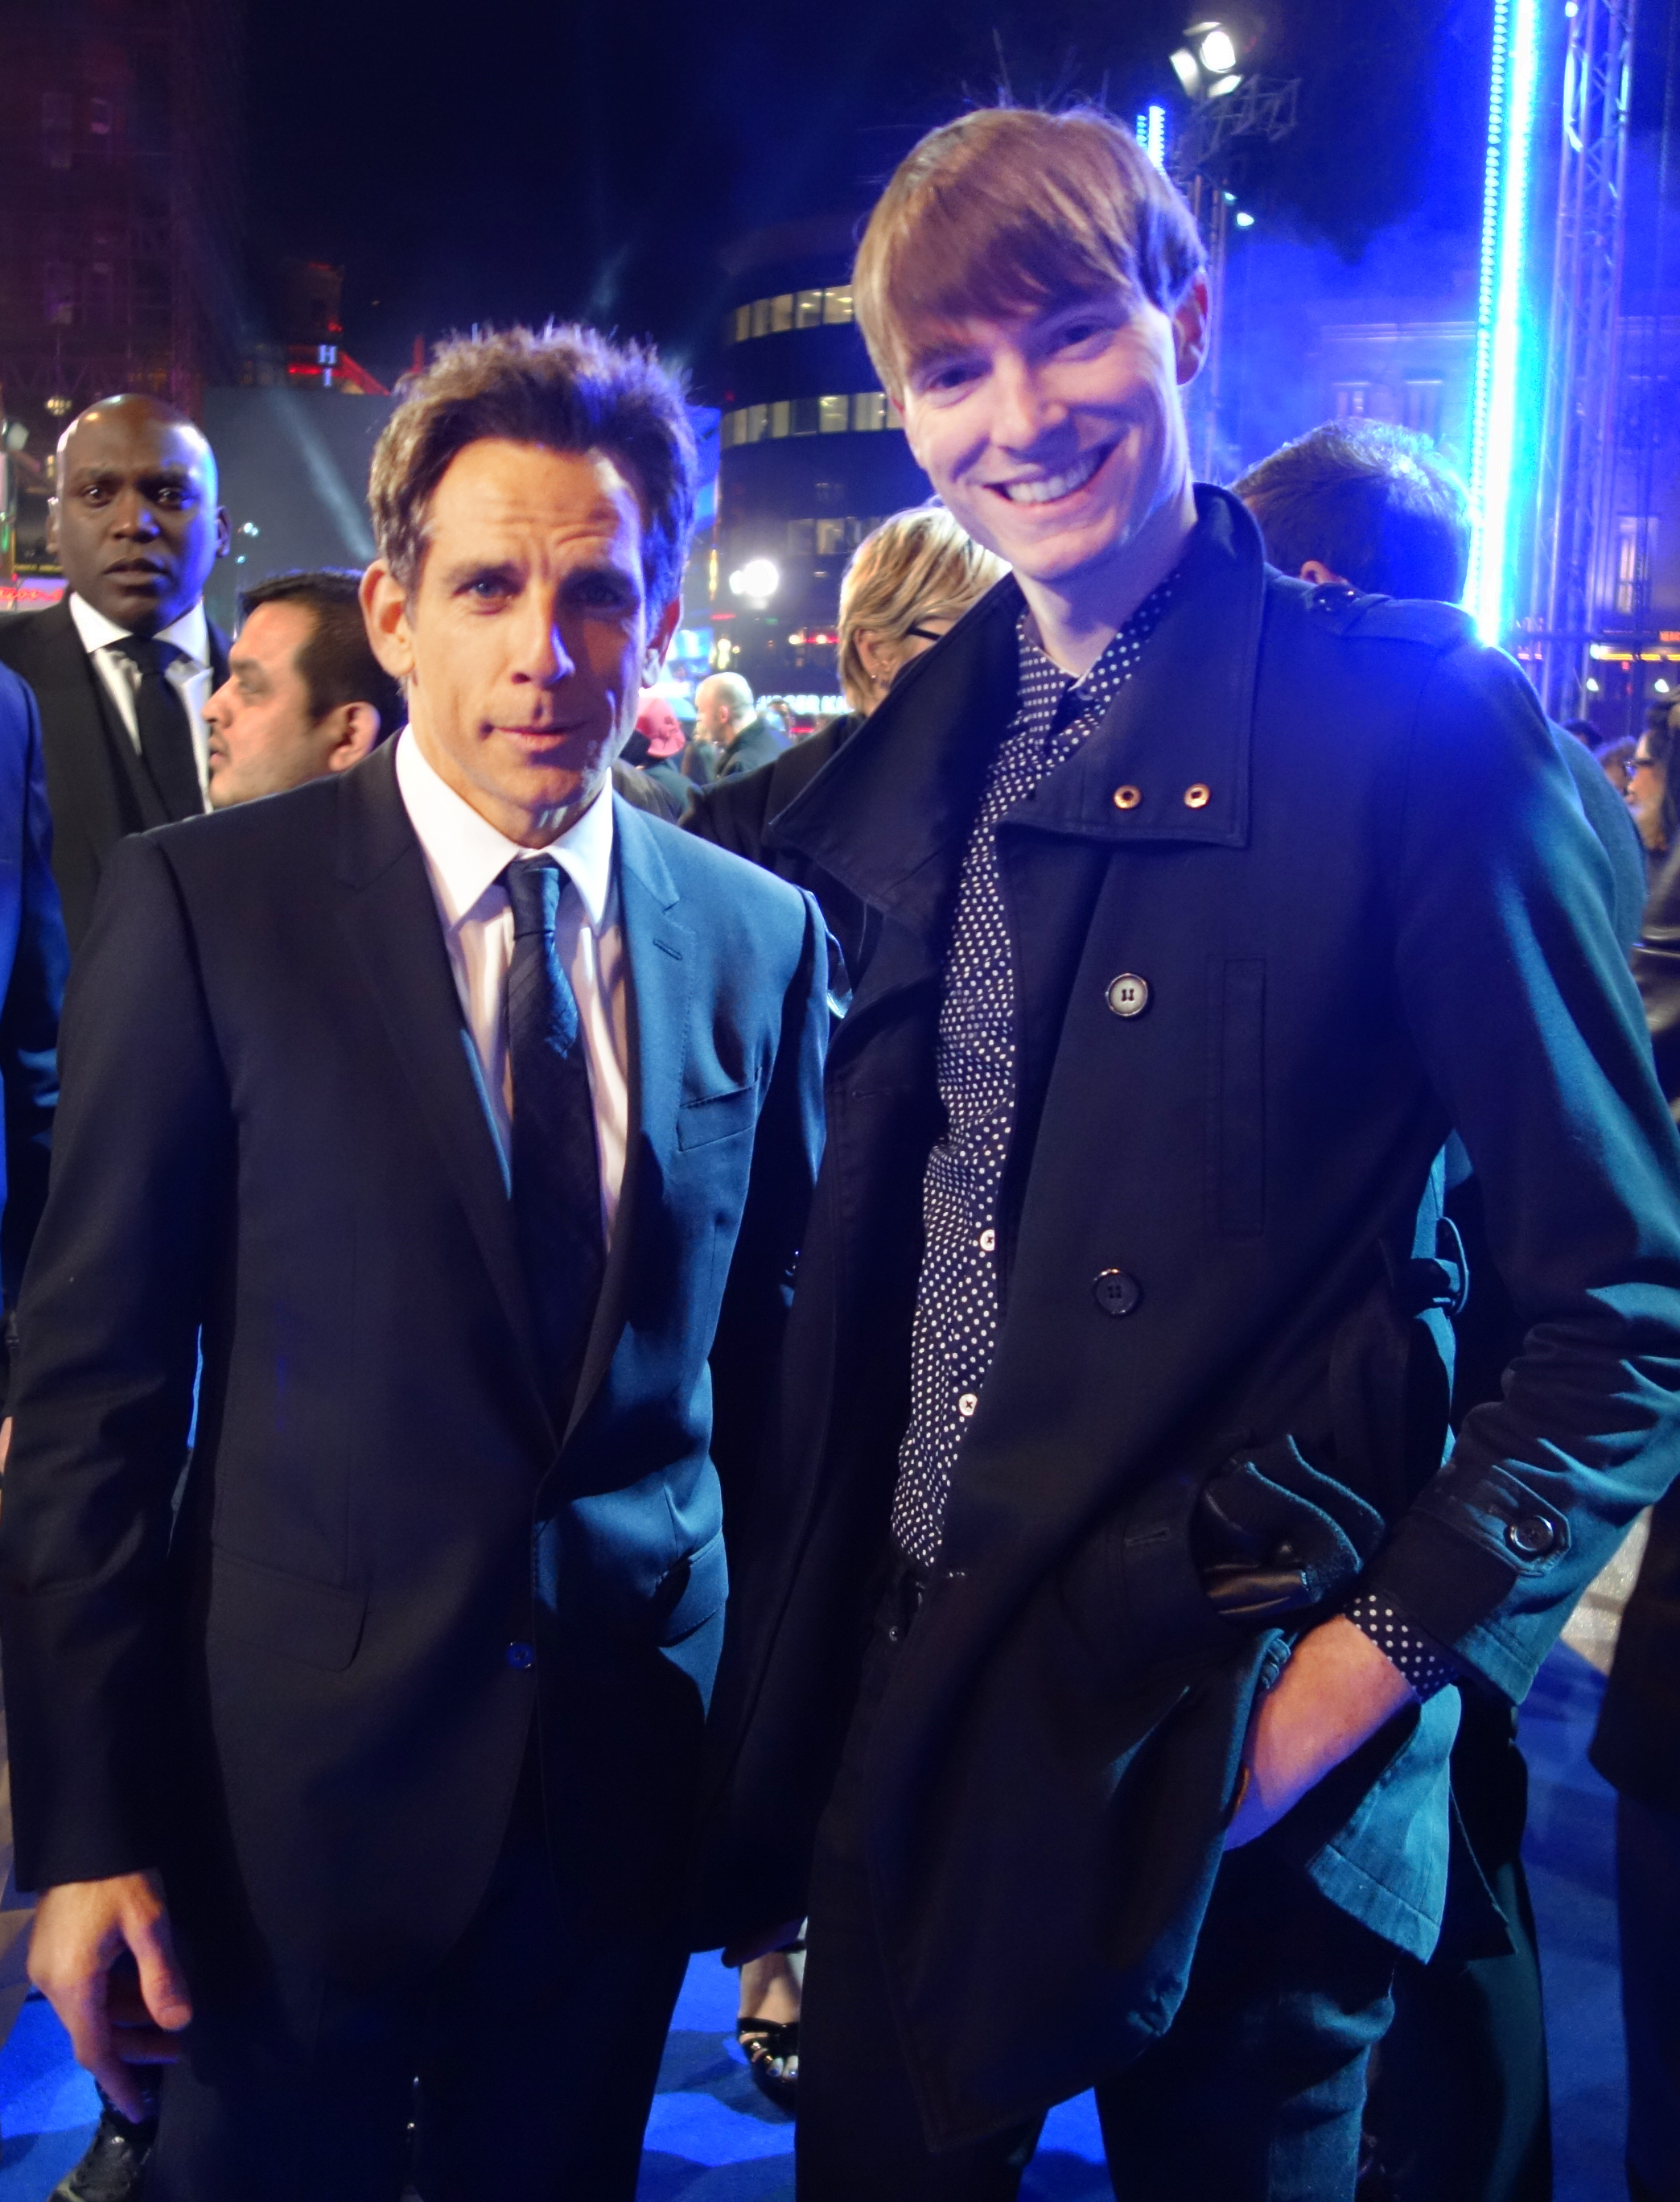 Ben Stiller & Richard Brownlie-Marshall